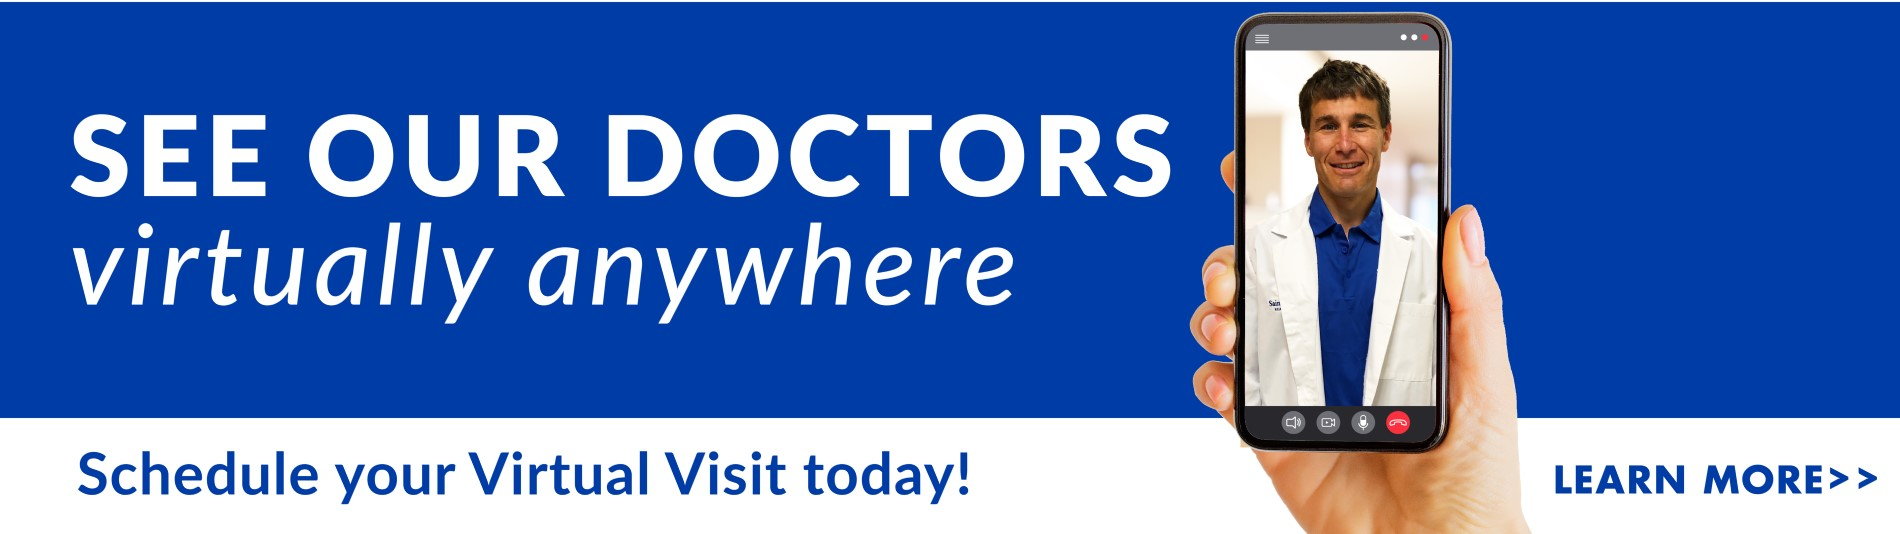 See our doctors, virtually anywhere. Schedule your virtual visit today! Click here